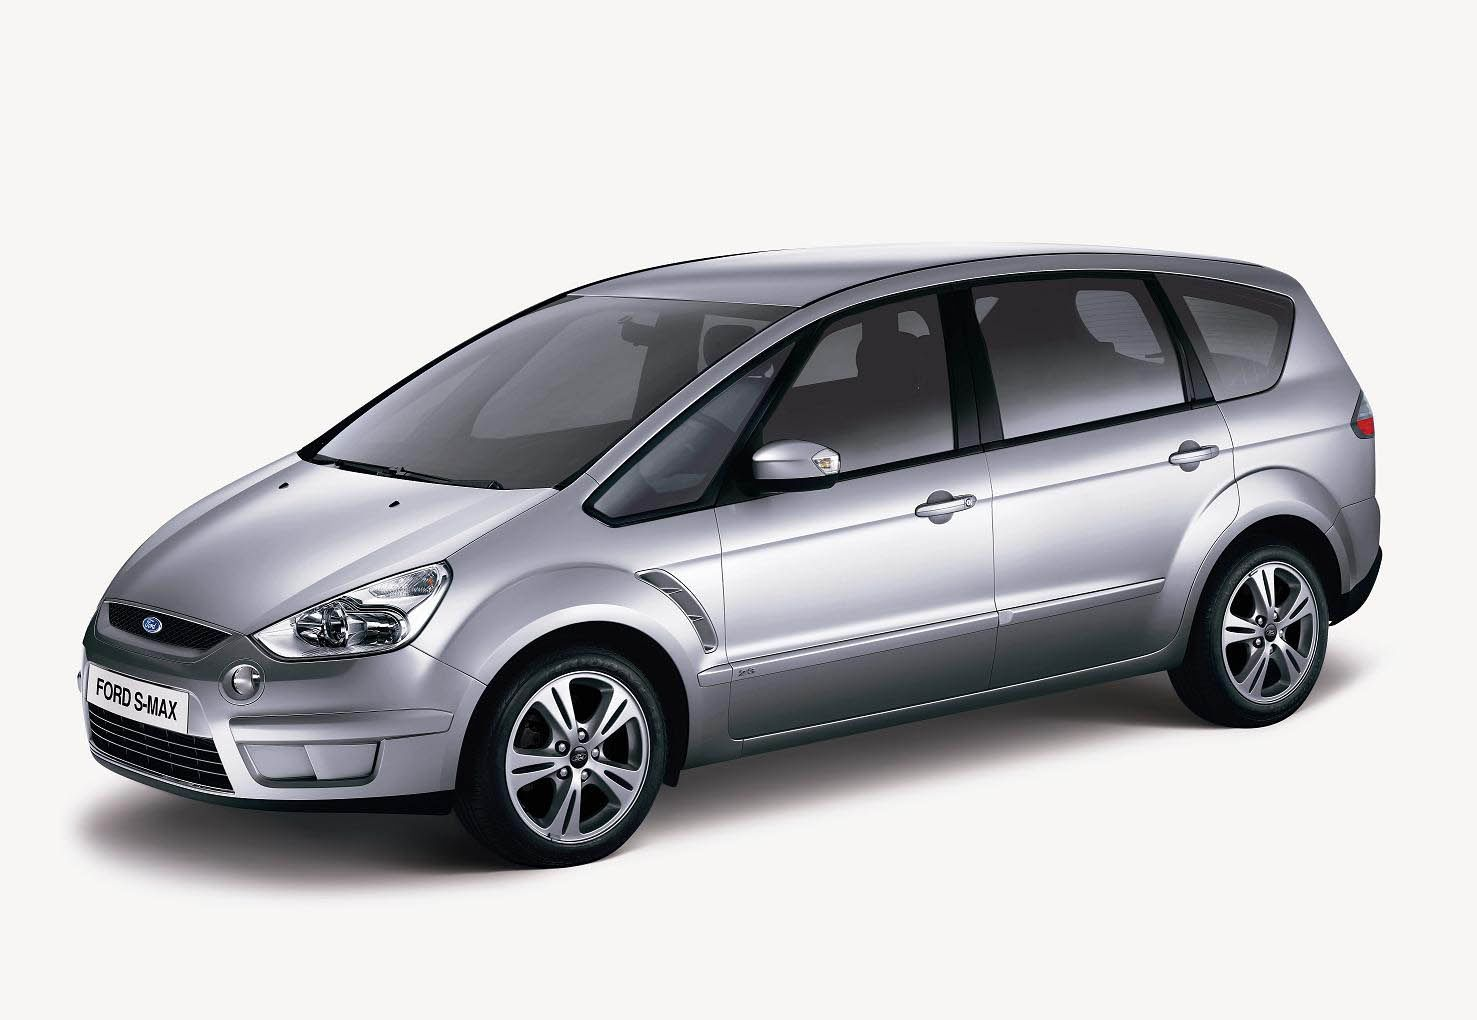 Ford S-Max 2.3 2011 photo - 2